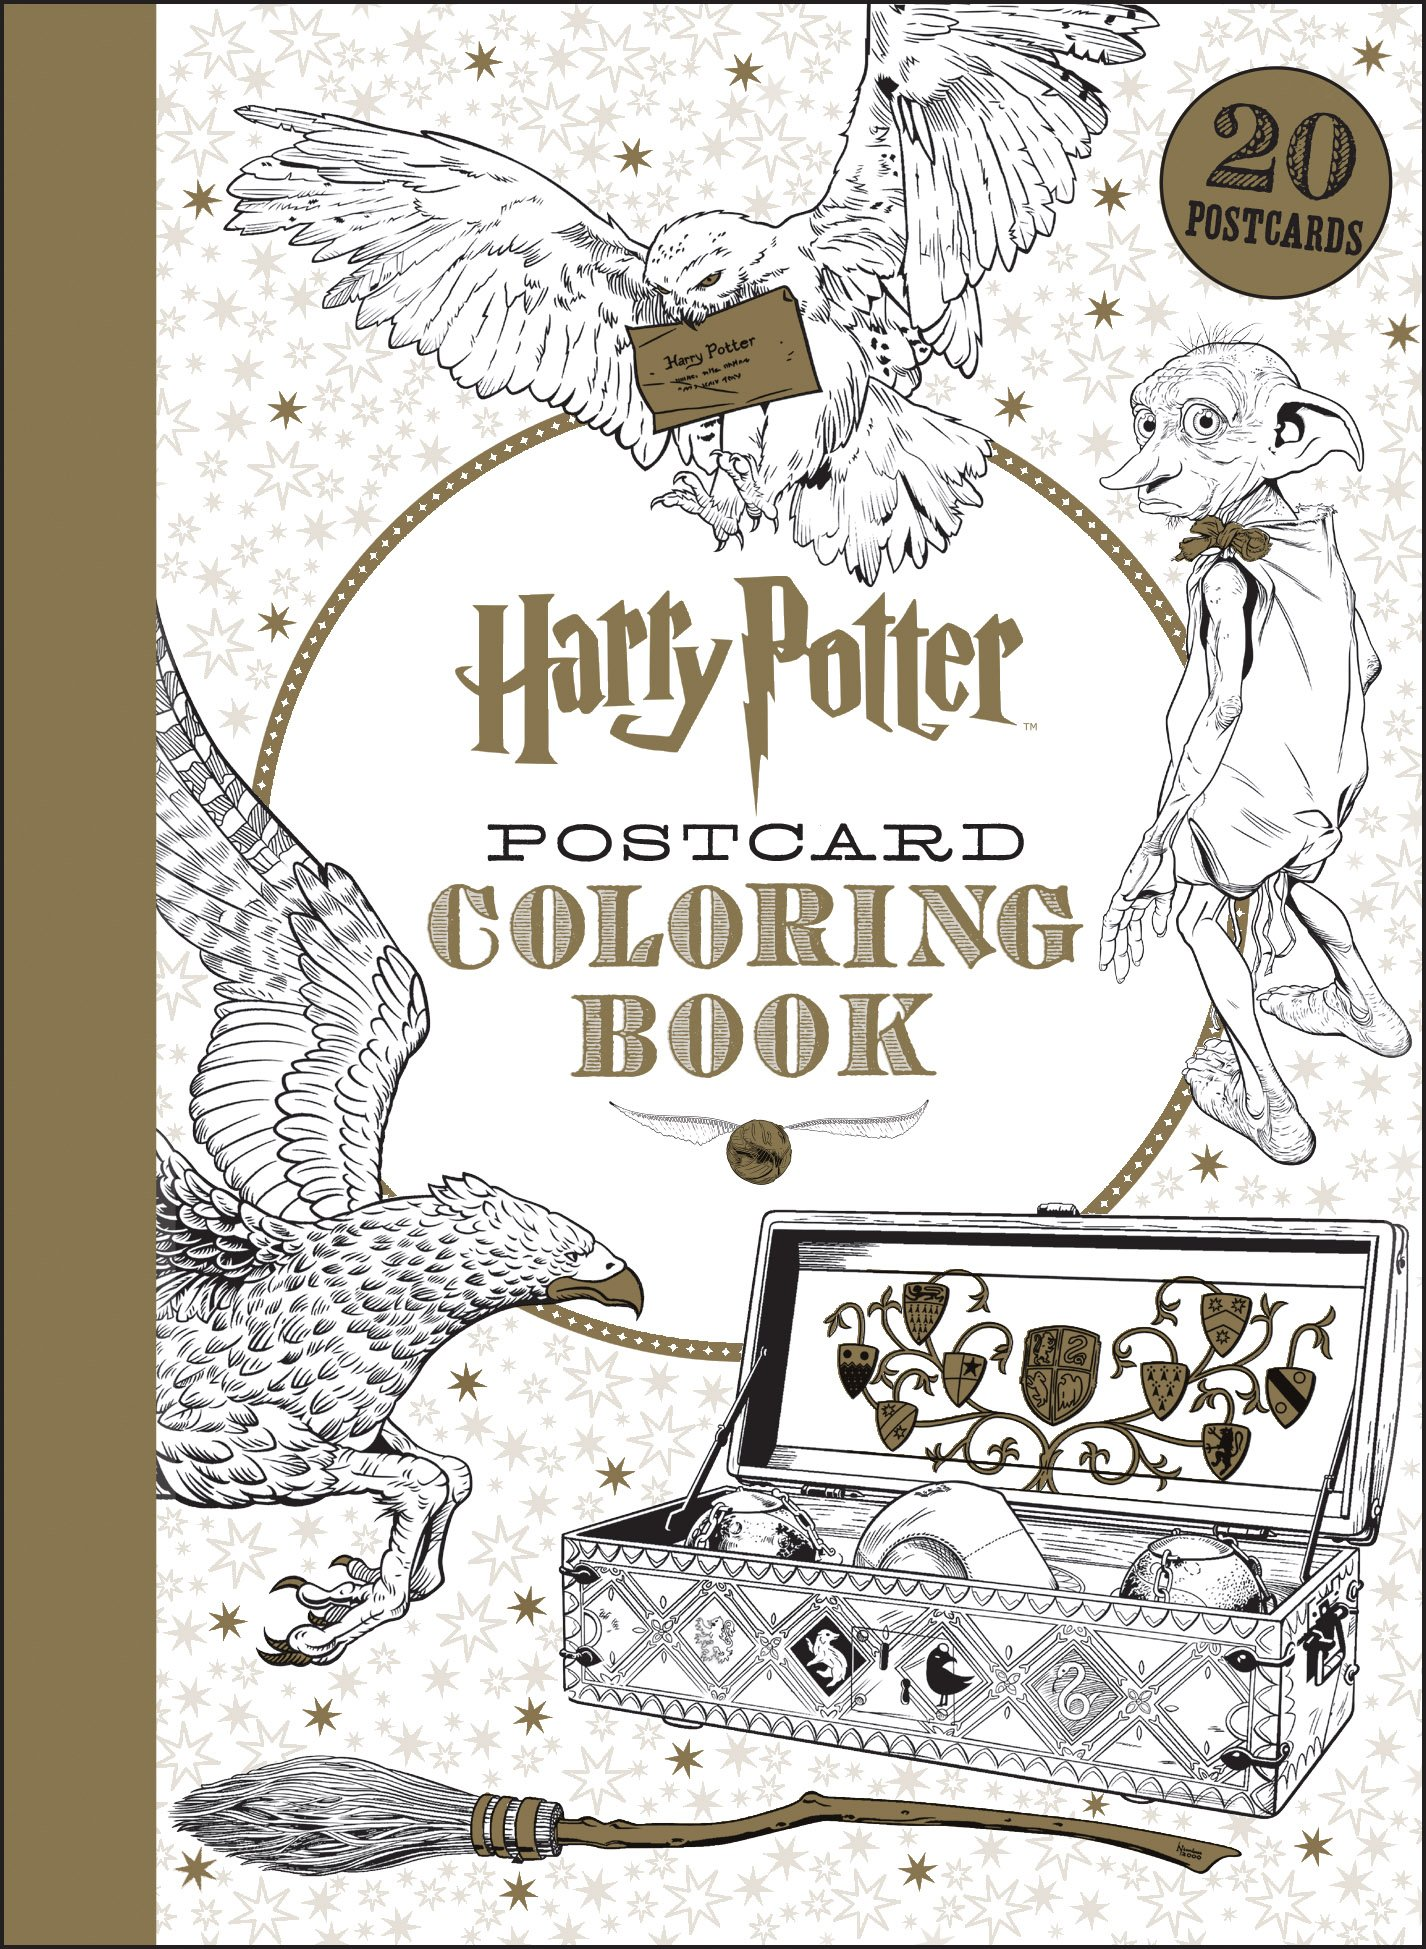 harry potter postcard coloring book scholastic 9781338045758 amazoncom books